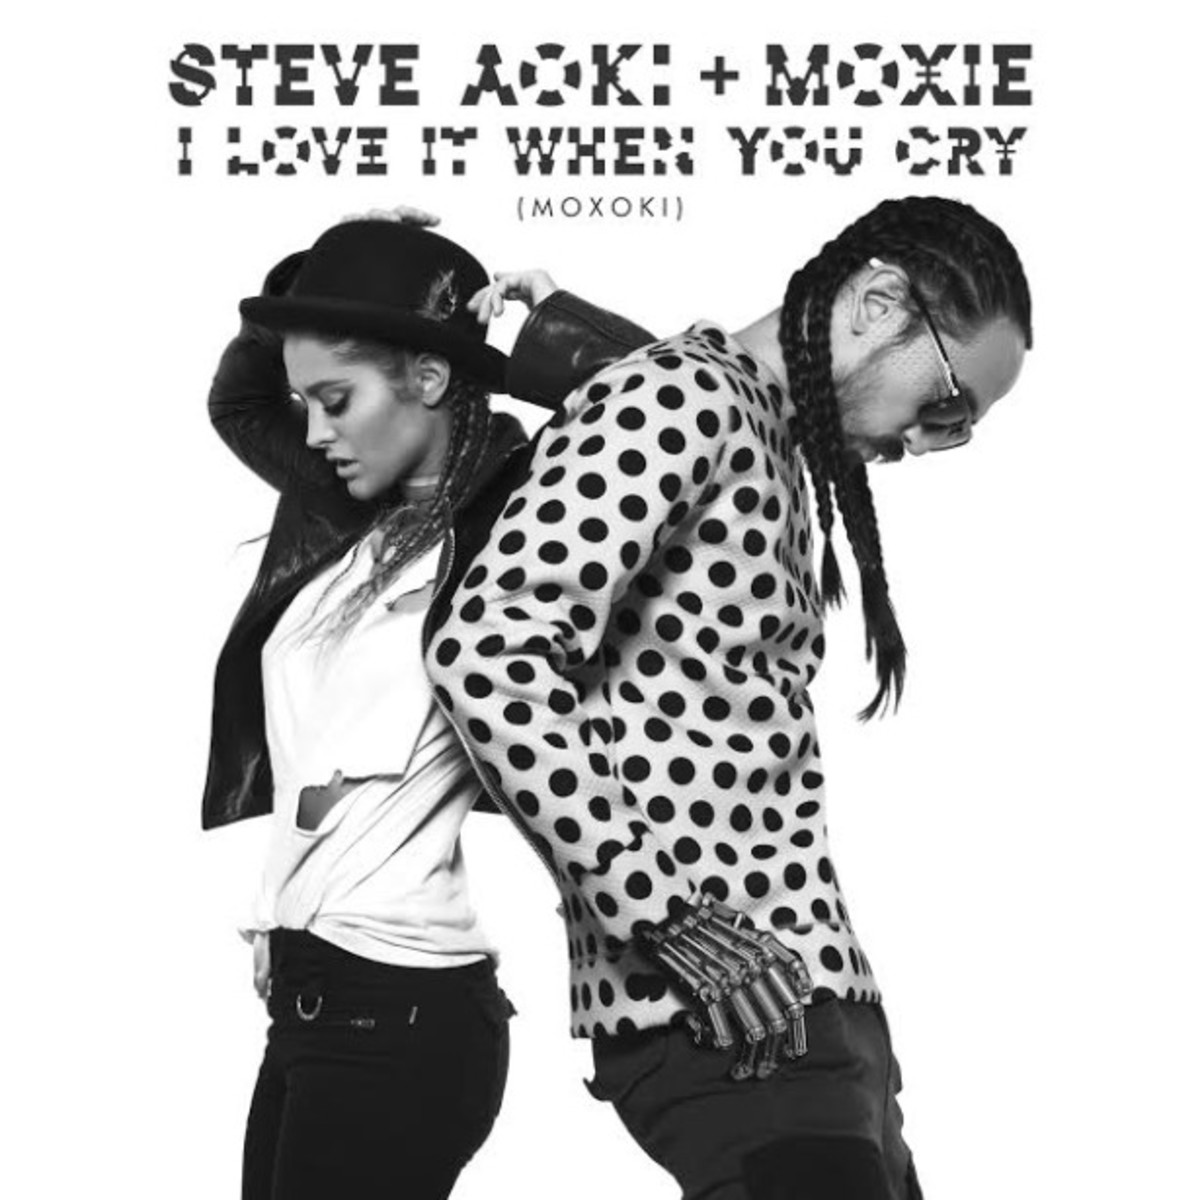 New Steve Aoki Single Is Massive - I Love It When You Cry